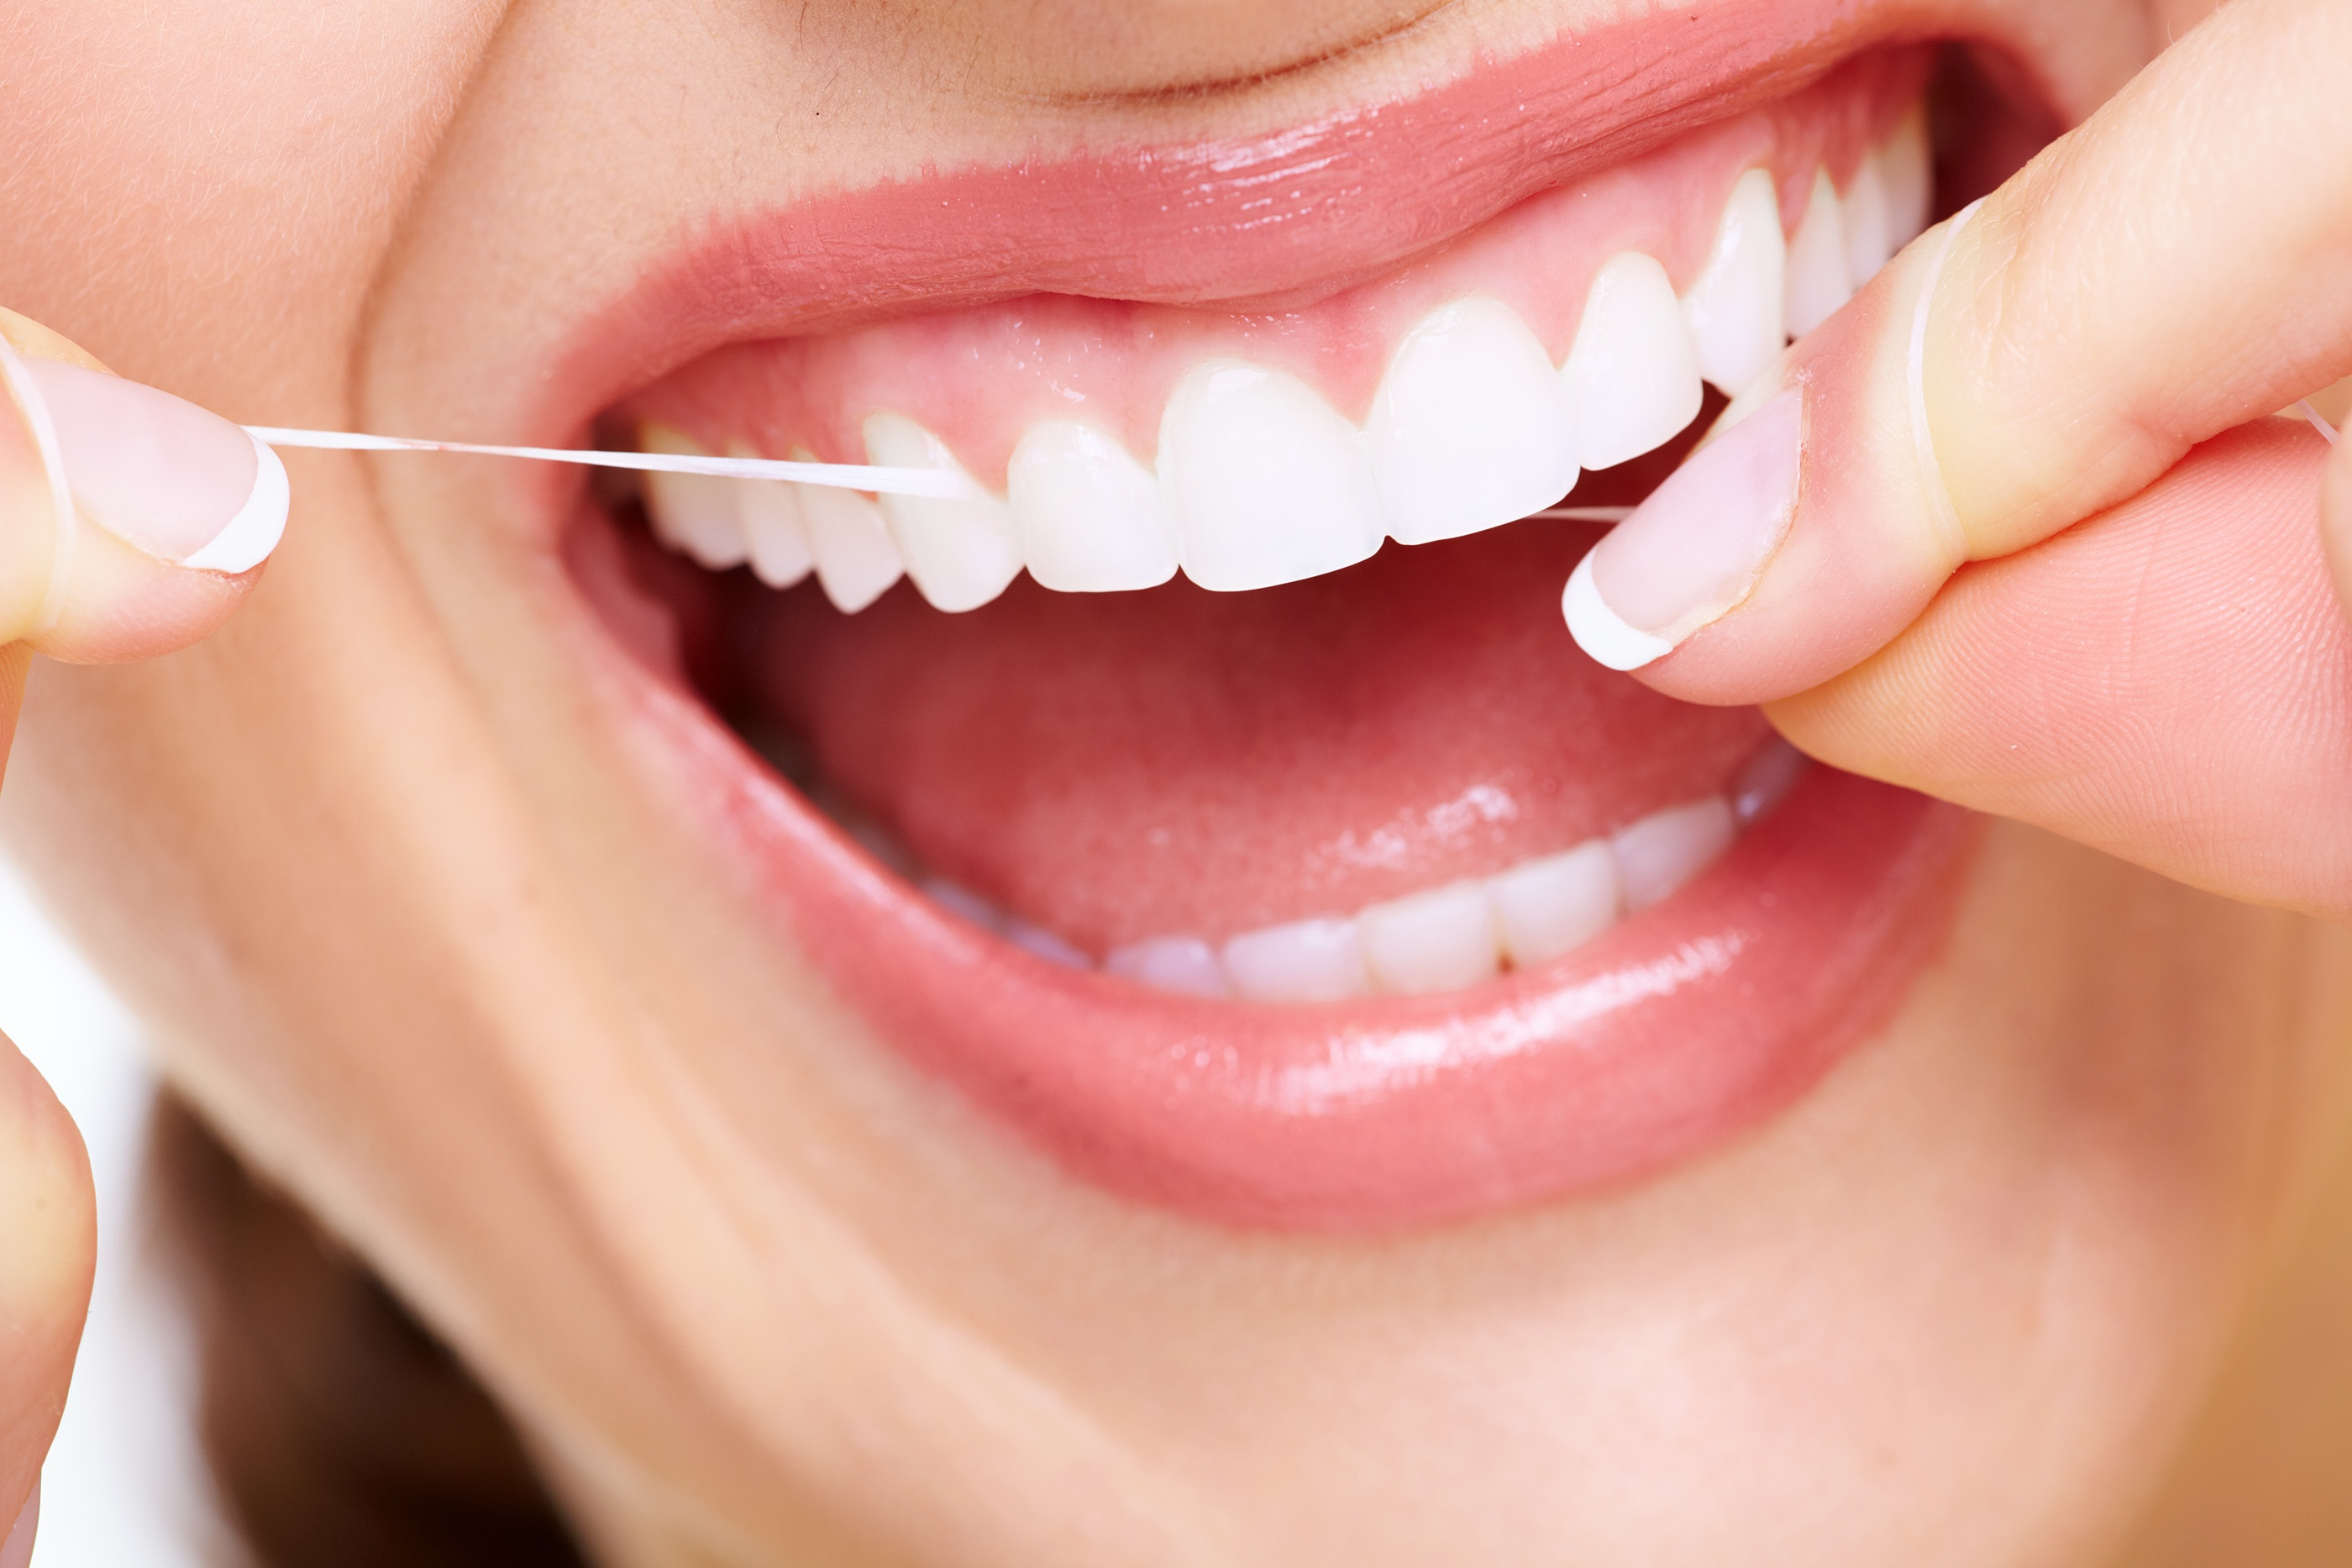 9 out of 10 Dentists Recommend You Stop Flossing